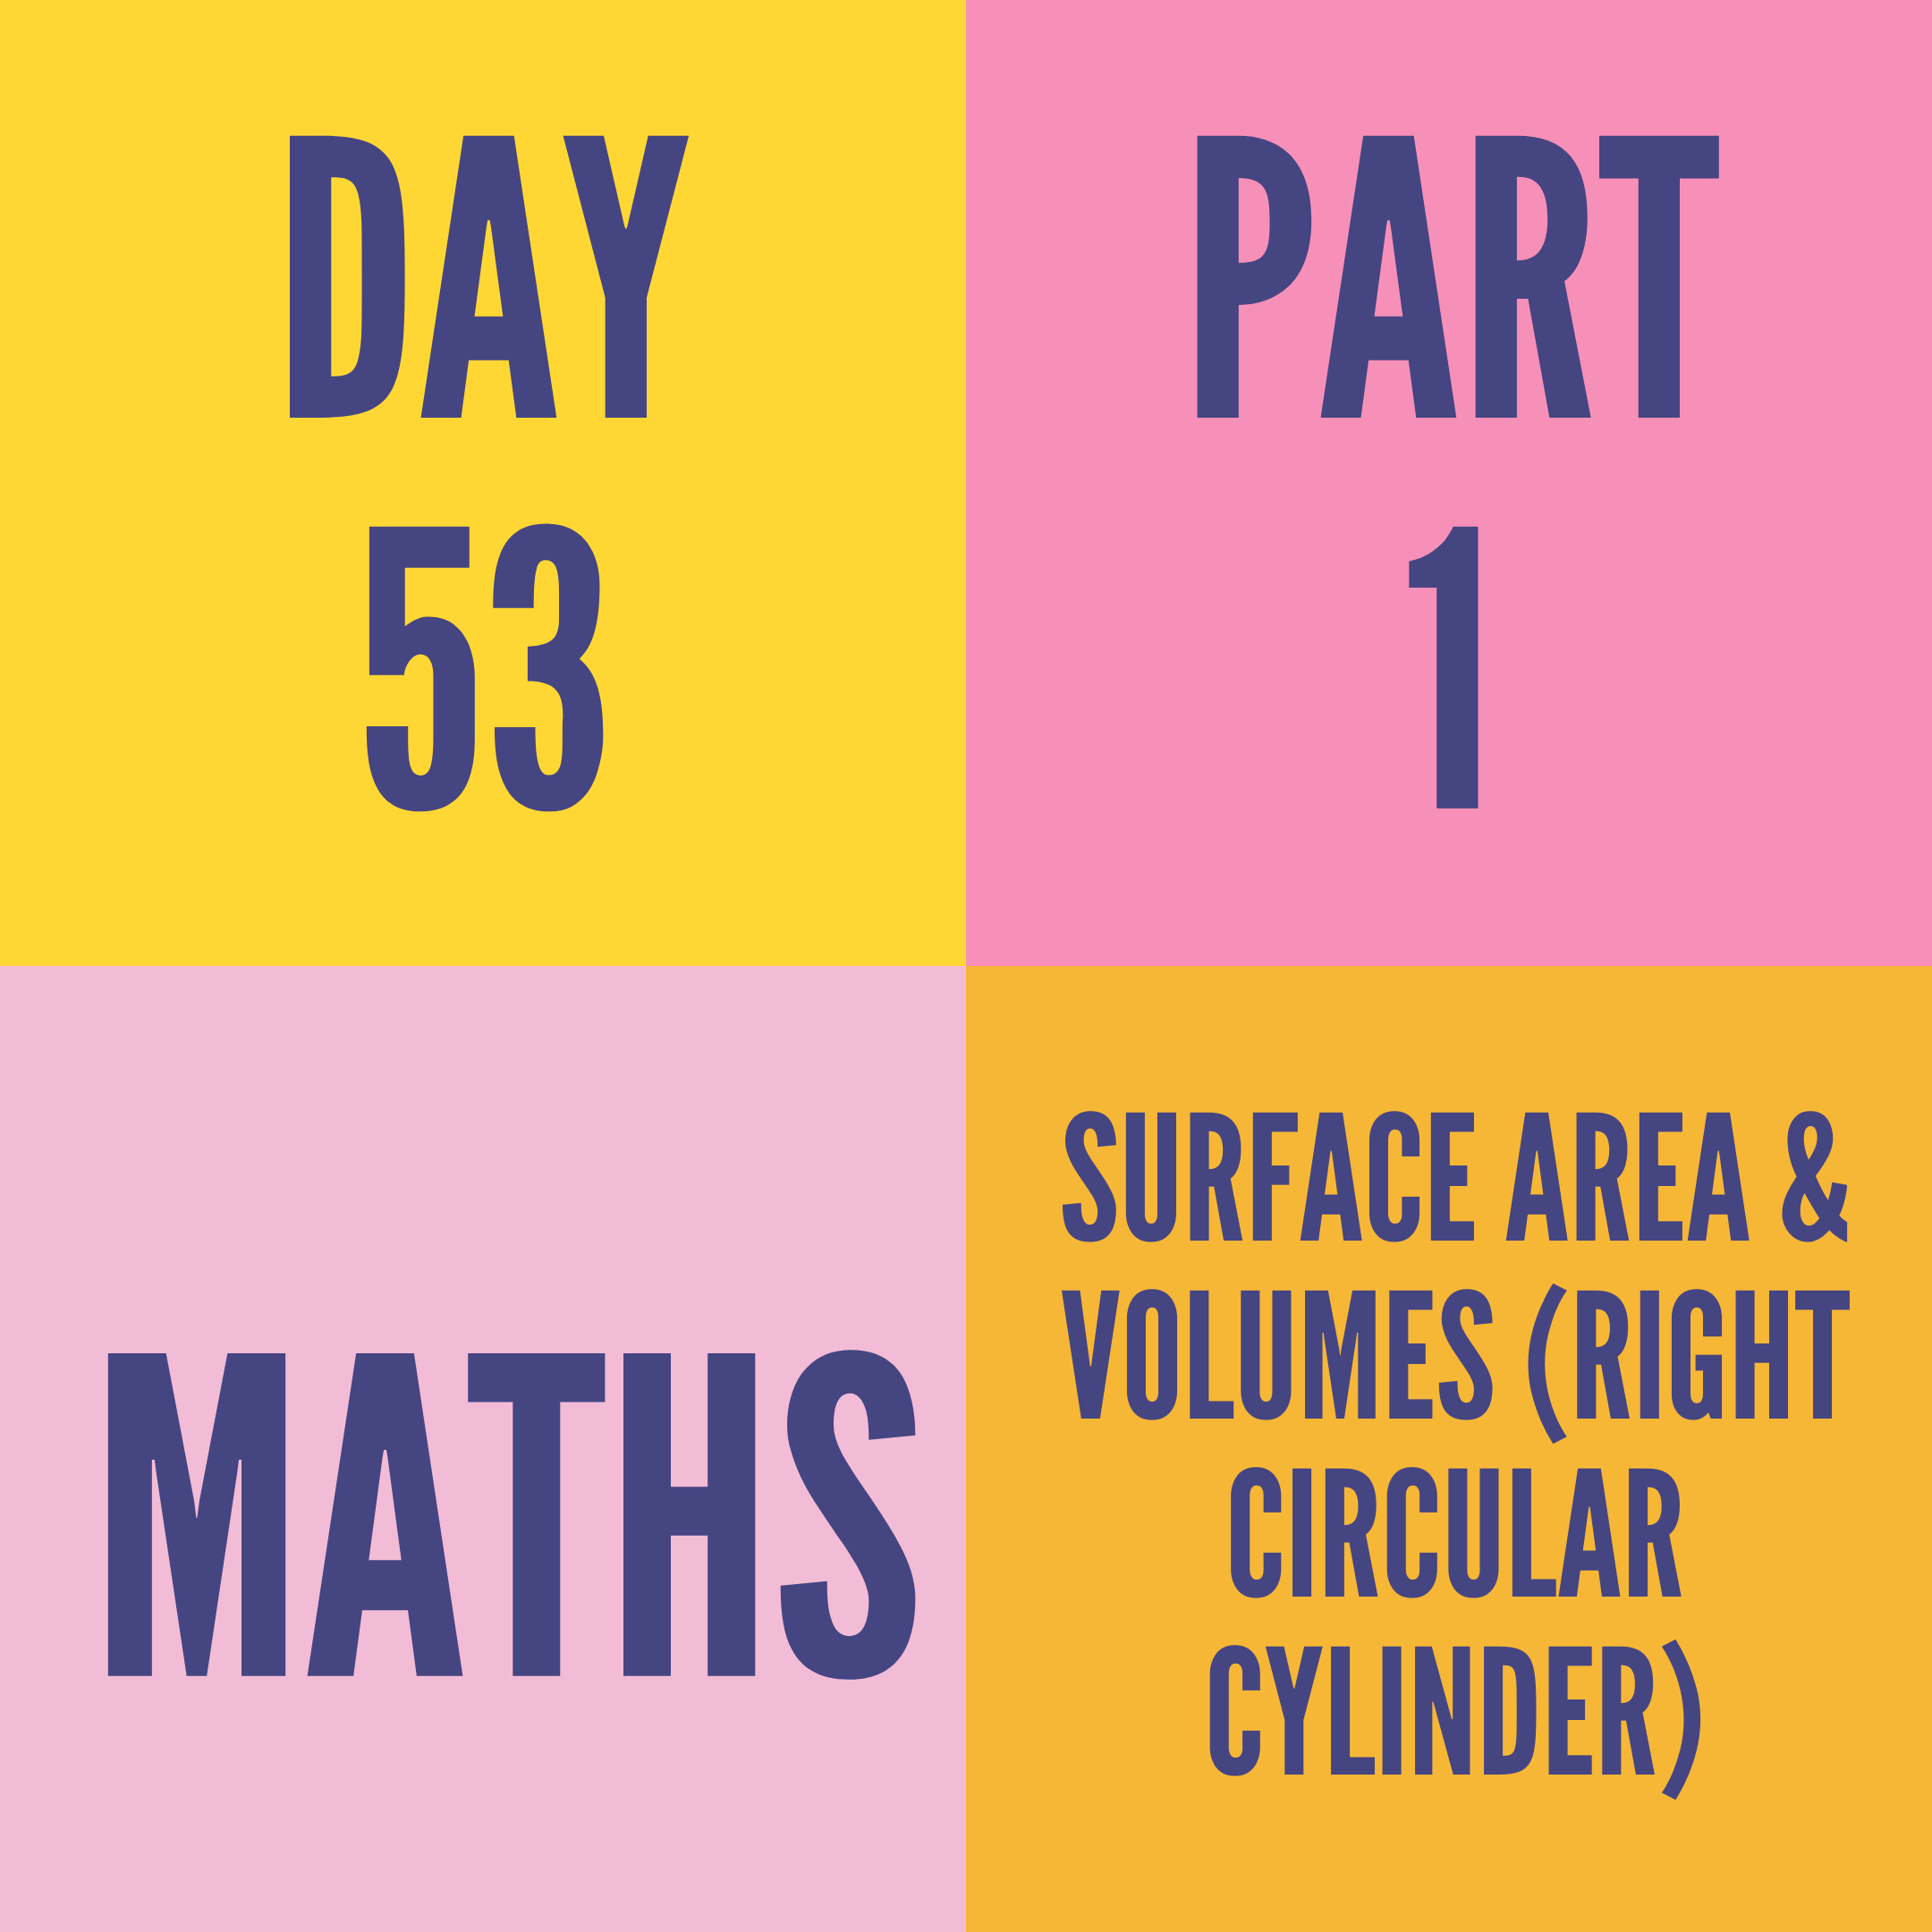 DAY-53 PART-1 SURFACE AREA & VOLUMES (RIGHT CIRCULAR CYLINDER)